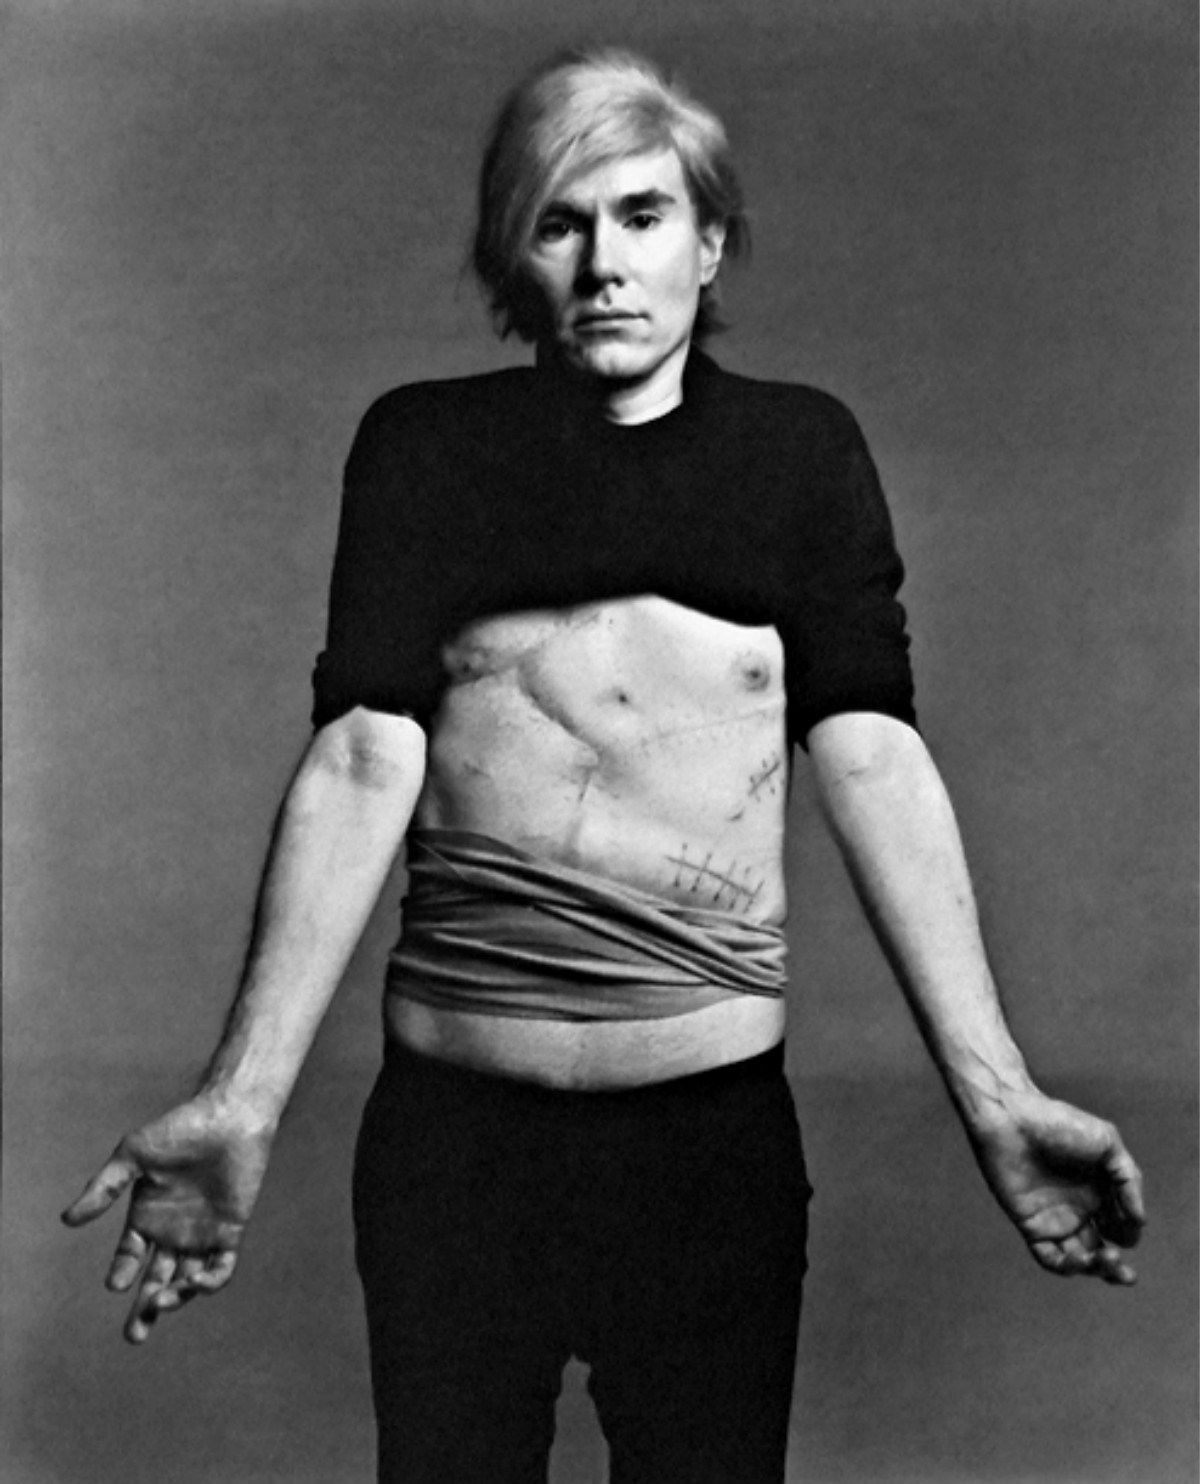 f20f2d9f857 Andy Warhol by Richard Avedon 1987. Here Warhol shows off the scars from  when he was shot in 1968  six organs were pierced by bullets.